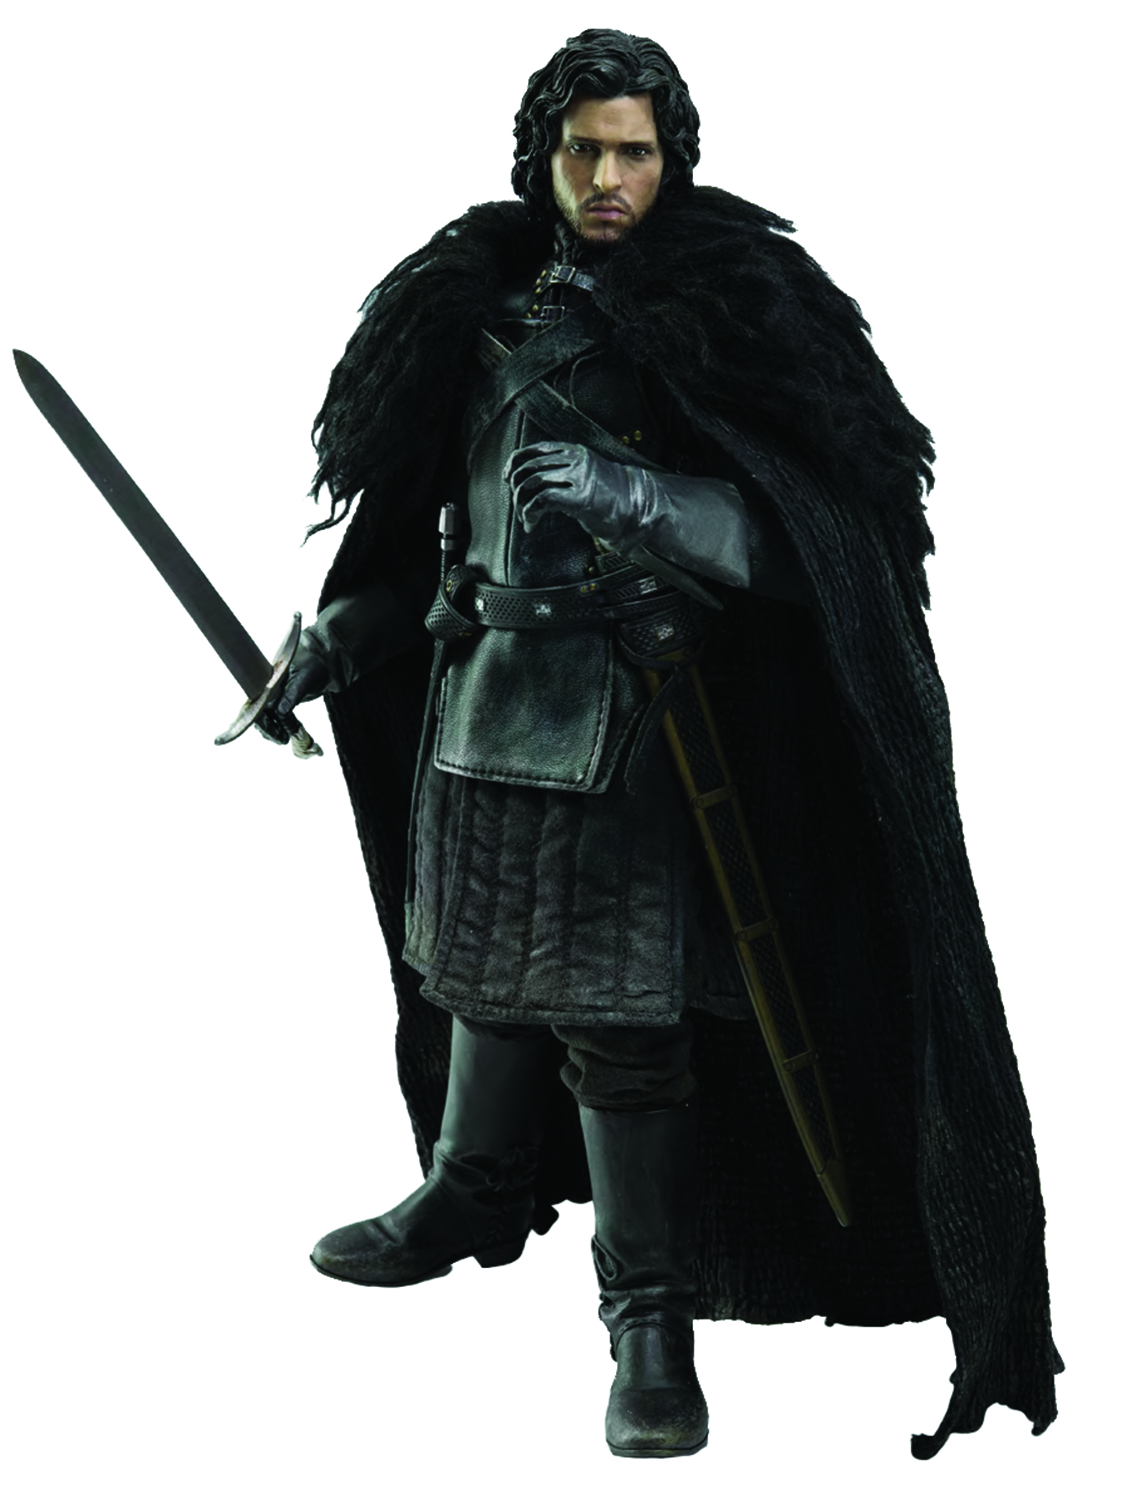 GAME OF THRONES JON SNOW 1/6 SCALE FIG